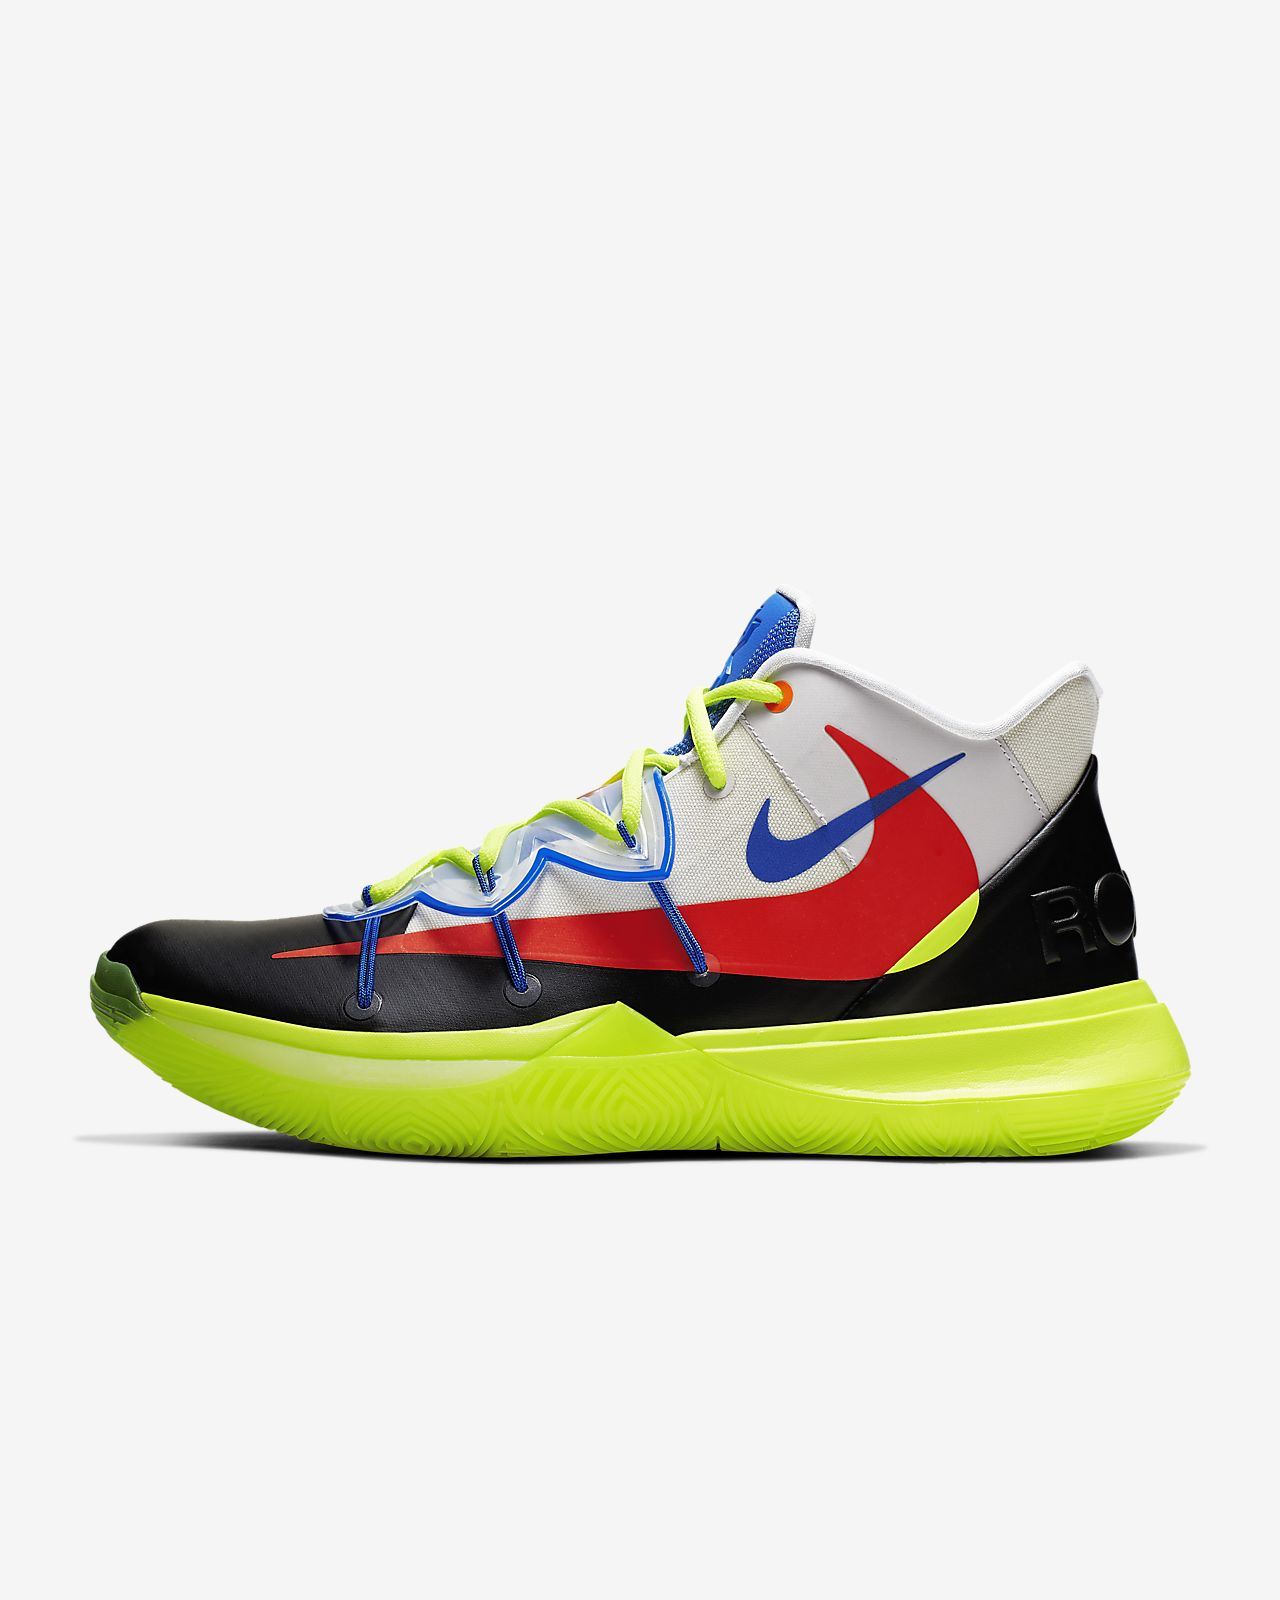 the latest d0eba f05e6 ... Kyrie 5 x ROKIT All Star Basketball Shoe